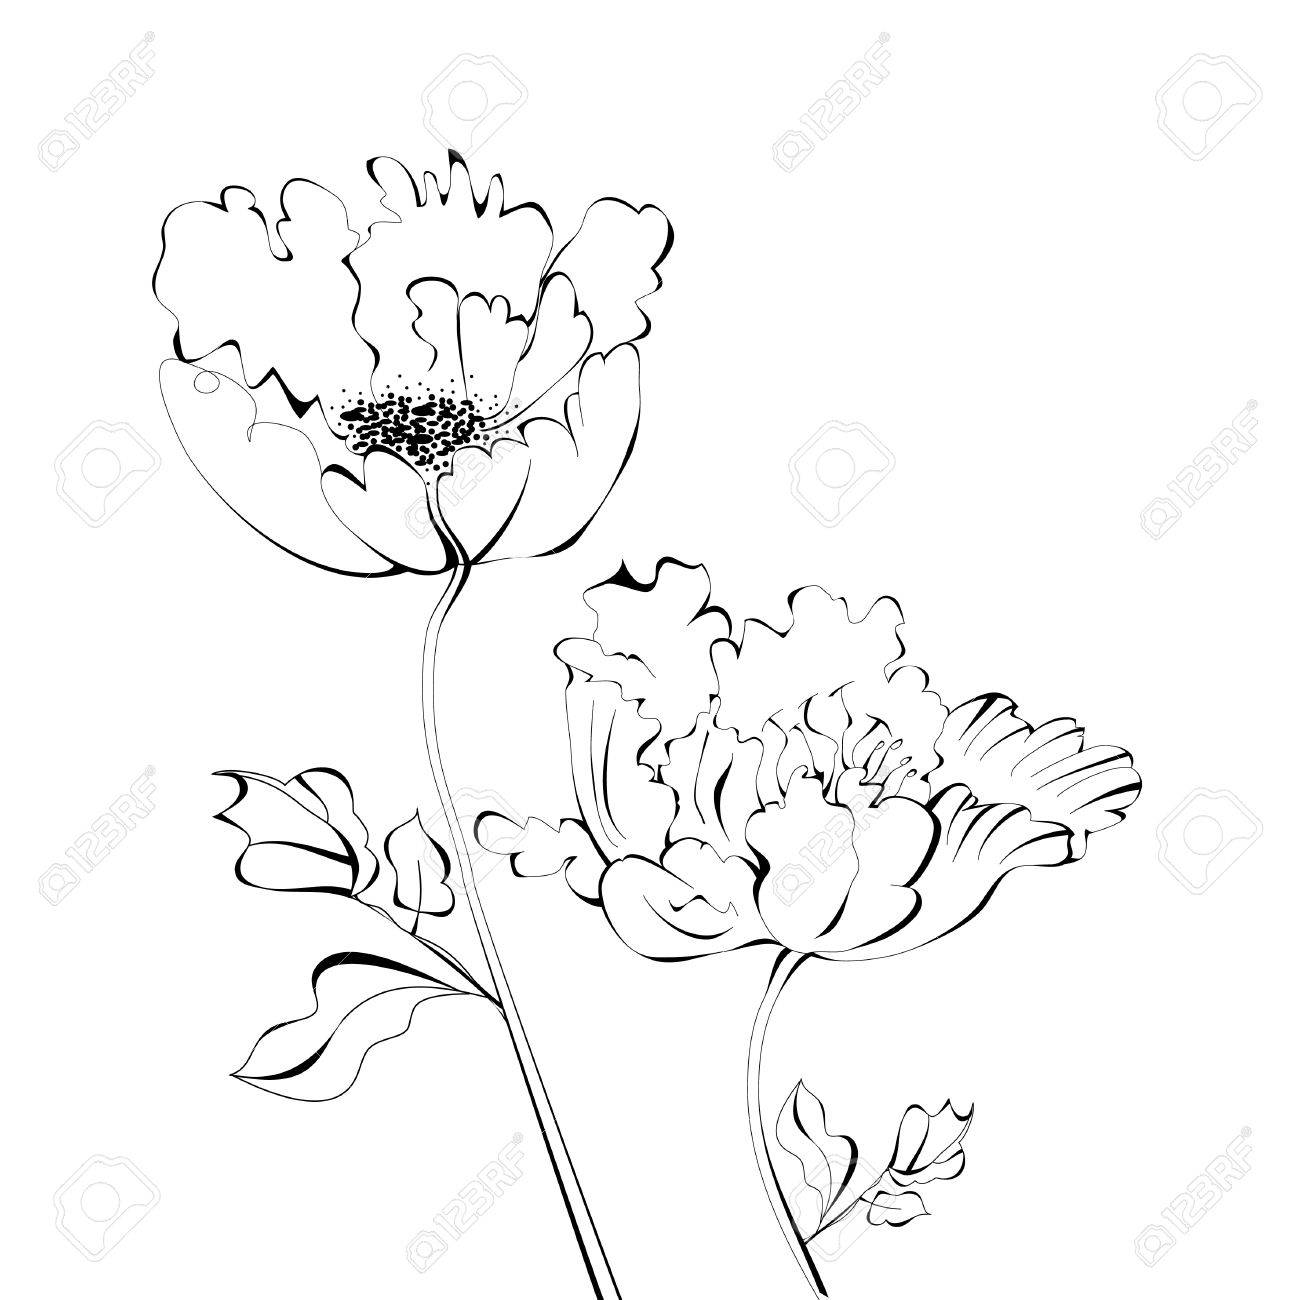 Black and white sketch with flowers Stock Vector - 9398126